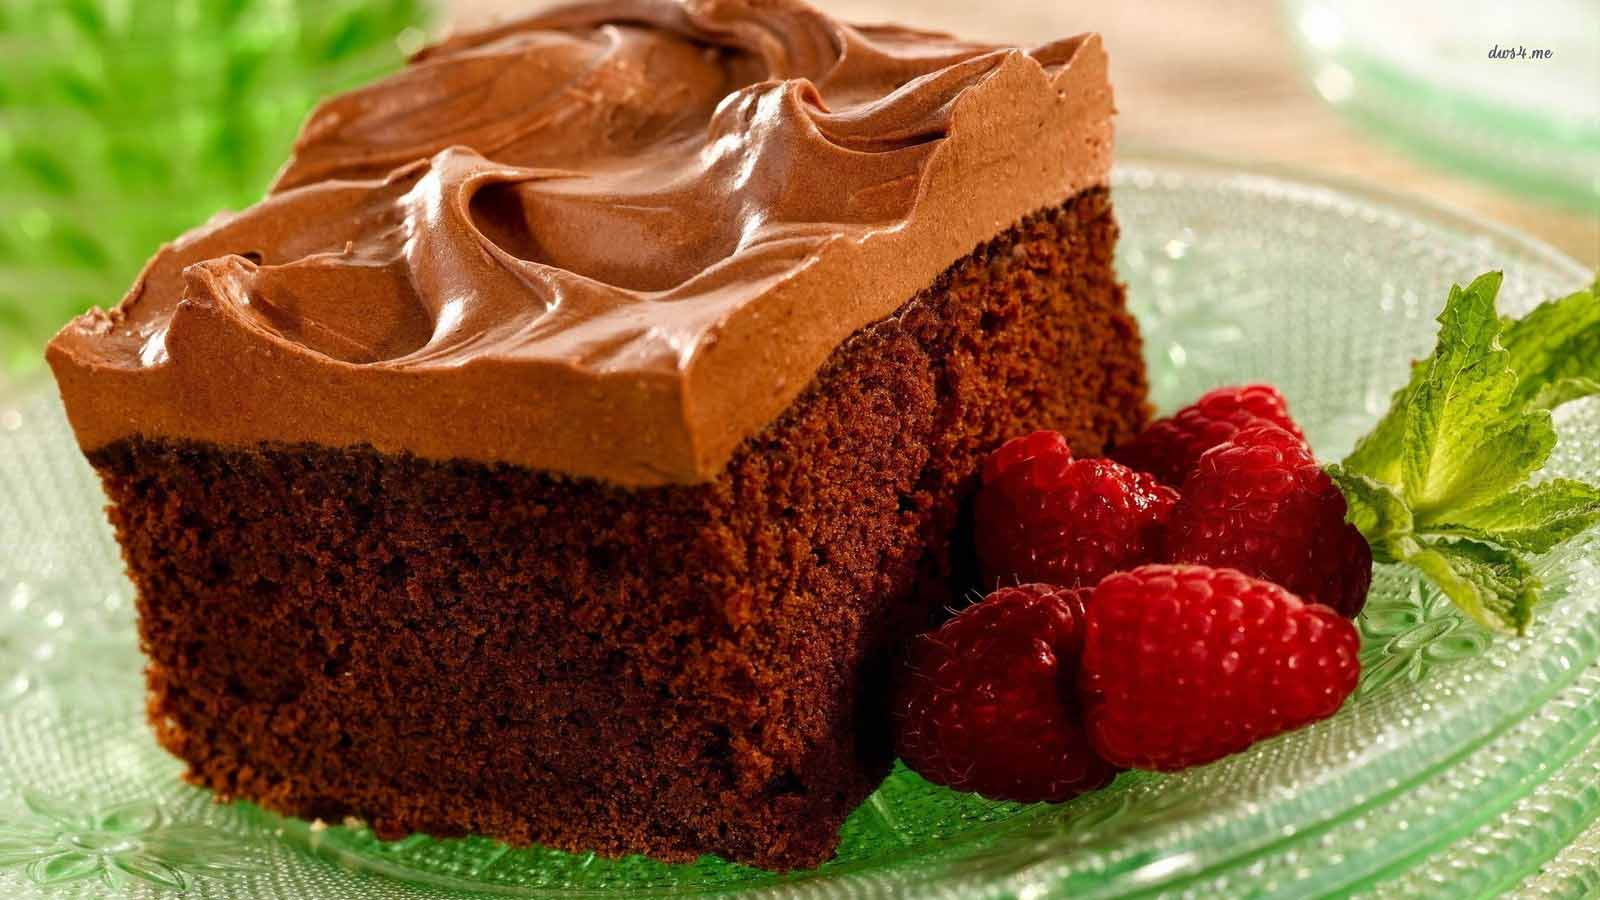 Chocolate Cake HD Wallpapers 1600x900